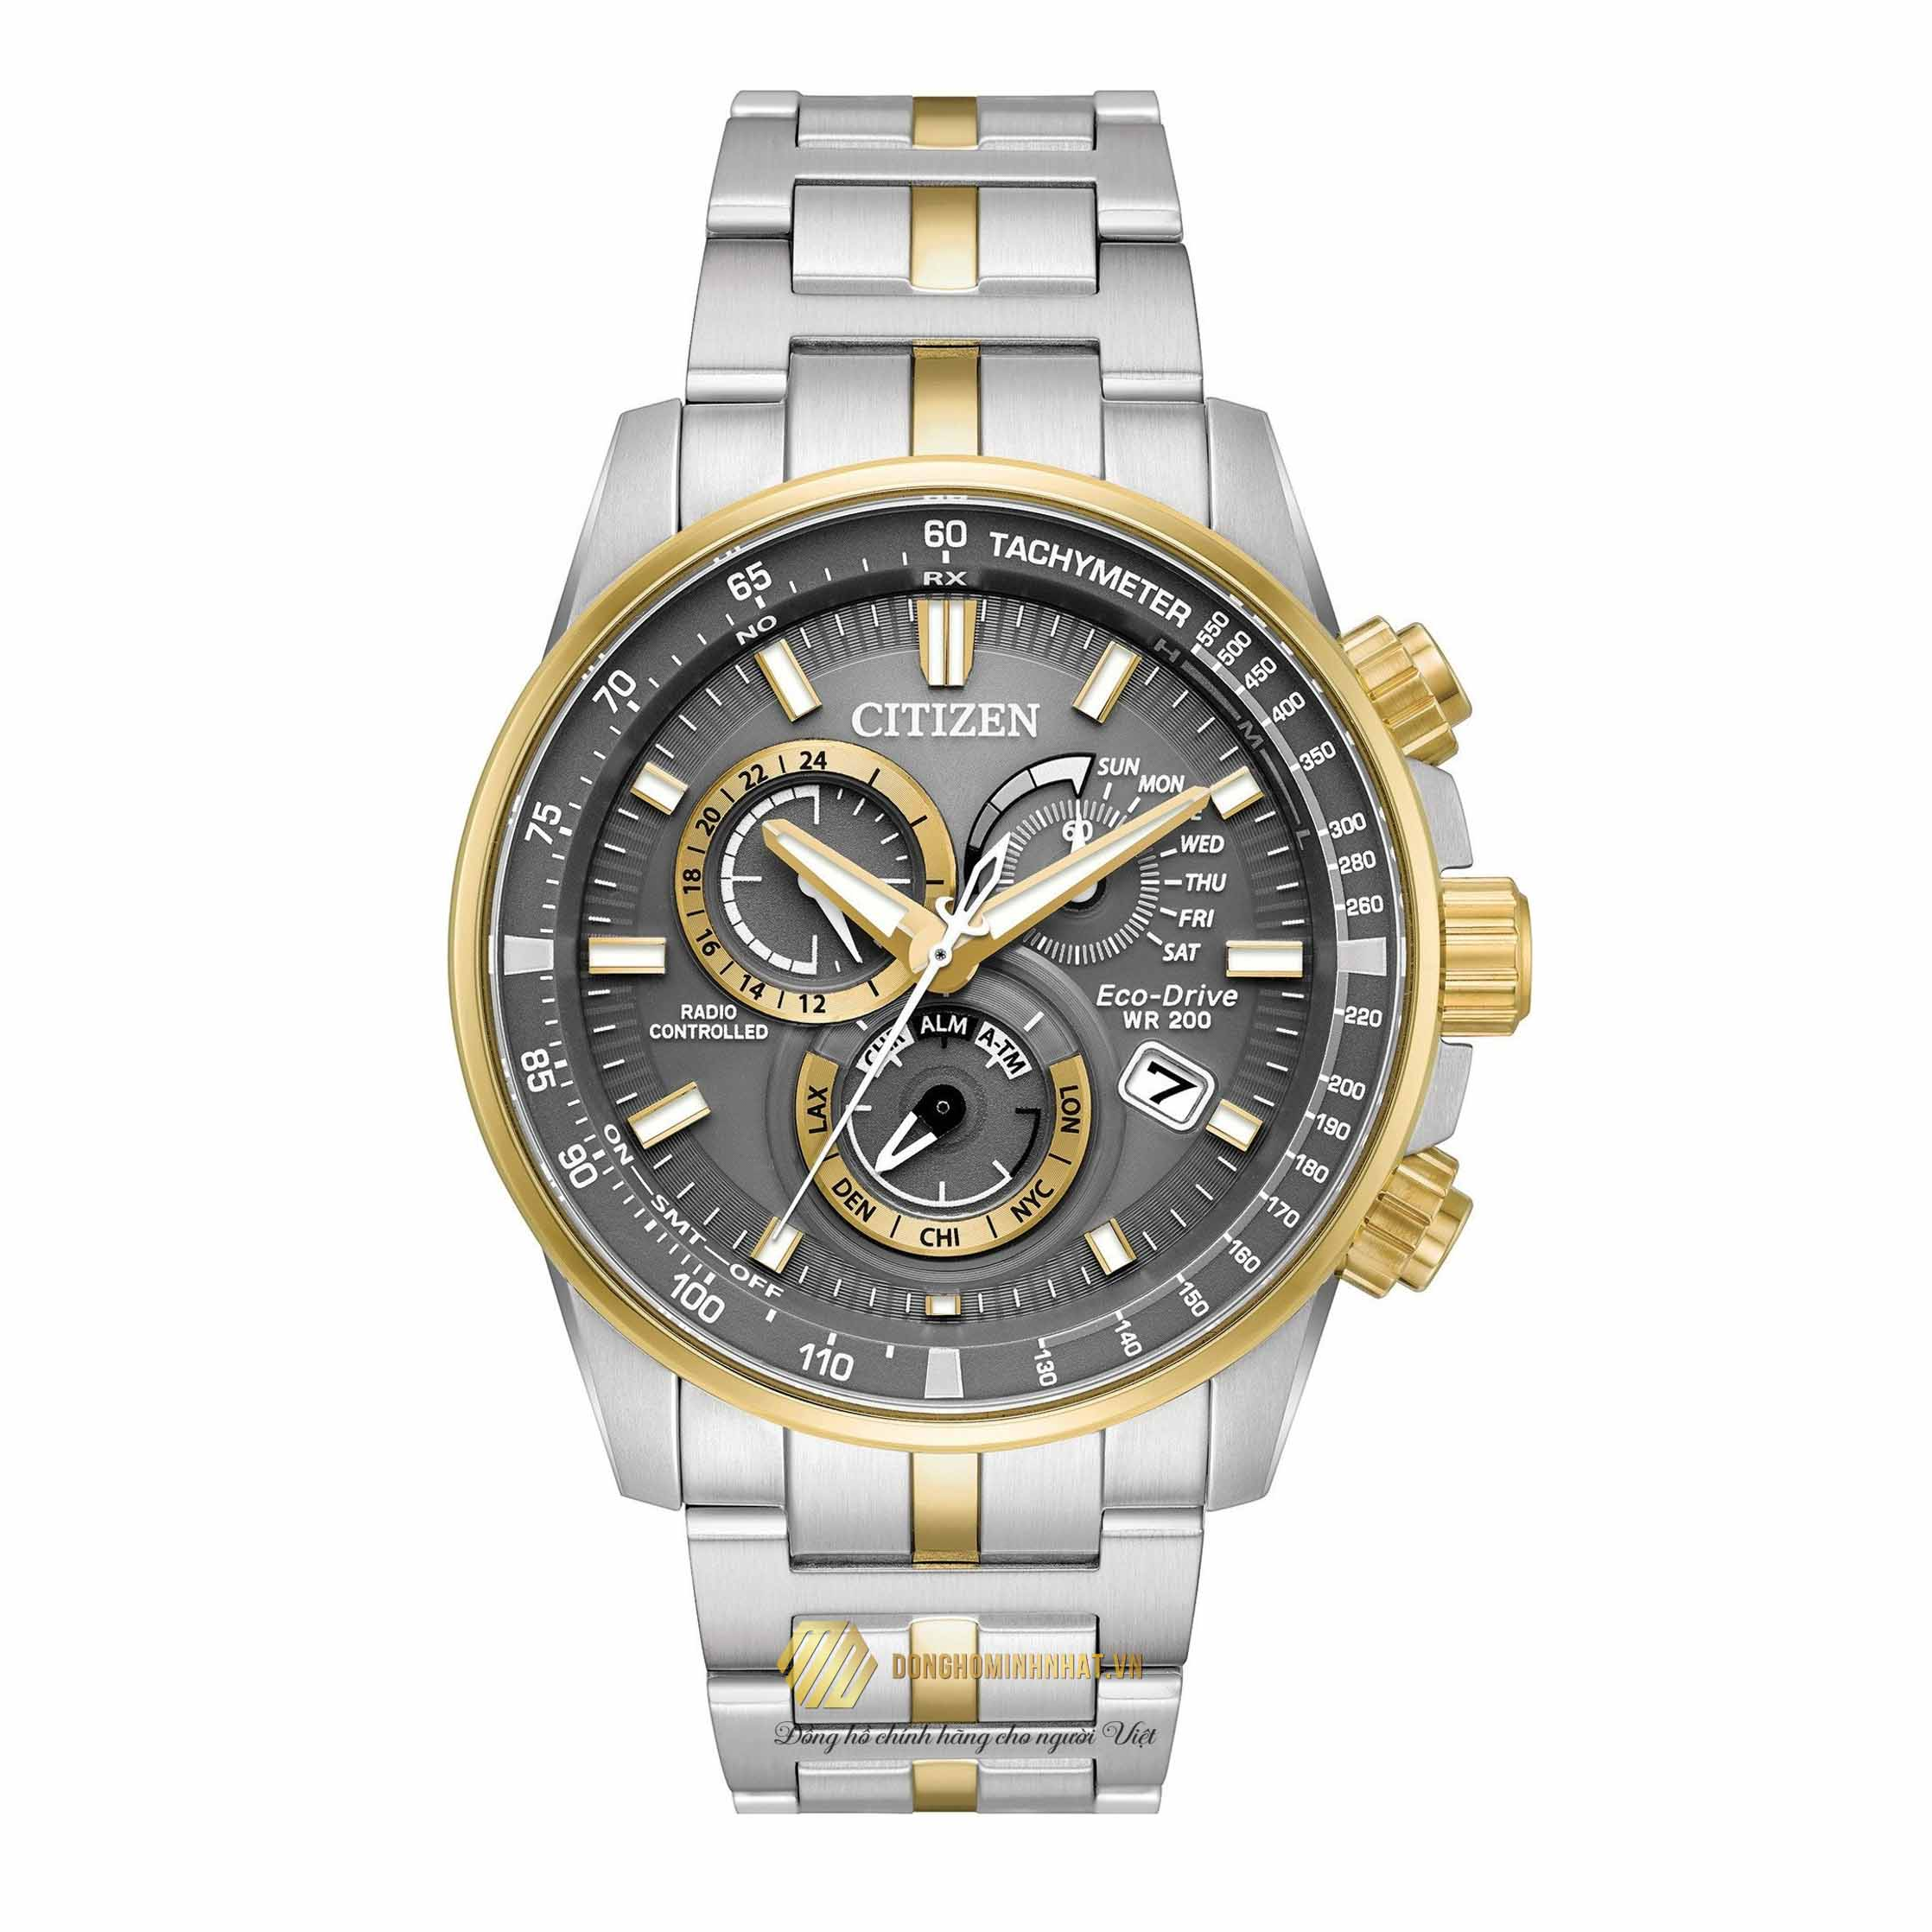 ĐỒNG HỒ NAM CITIZEN AT4124-51H PCAT GREY DIAL WATCH 43MM